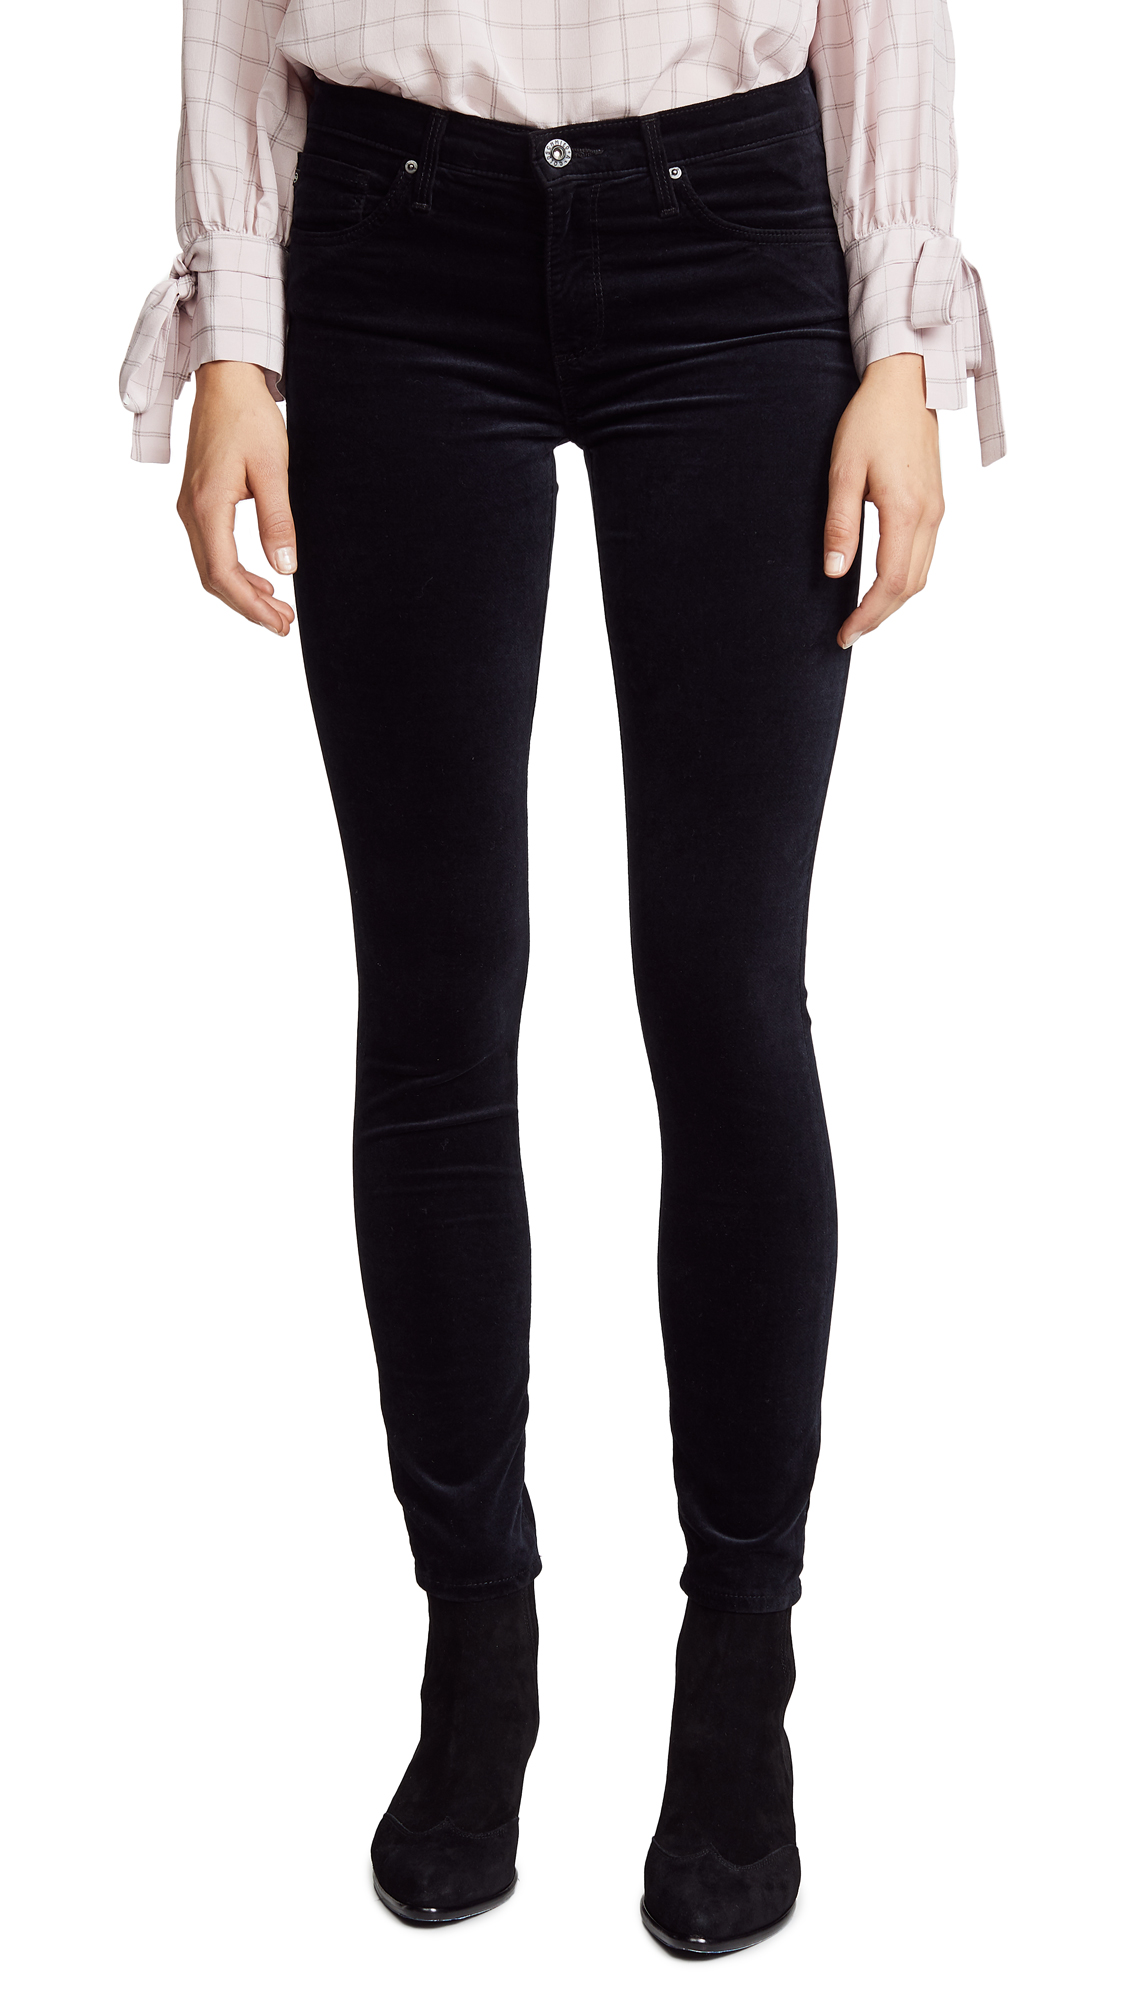 The Velvet Legging Ankle Skinny Jeans